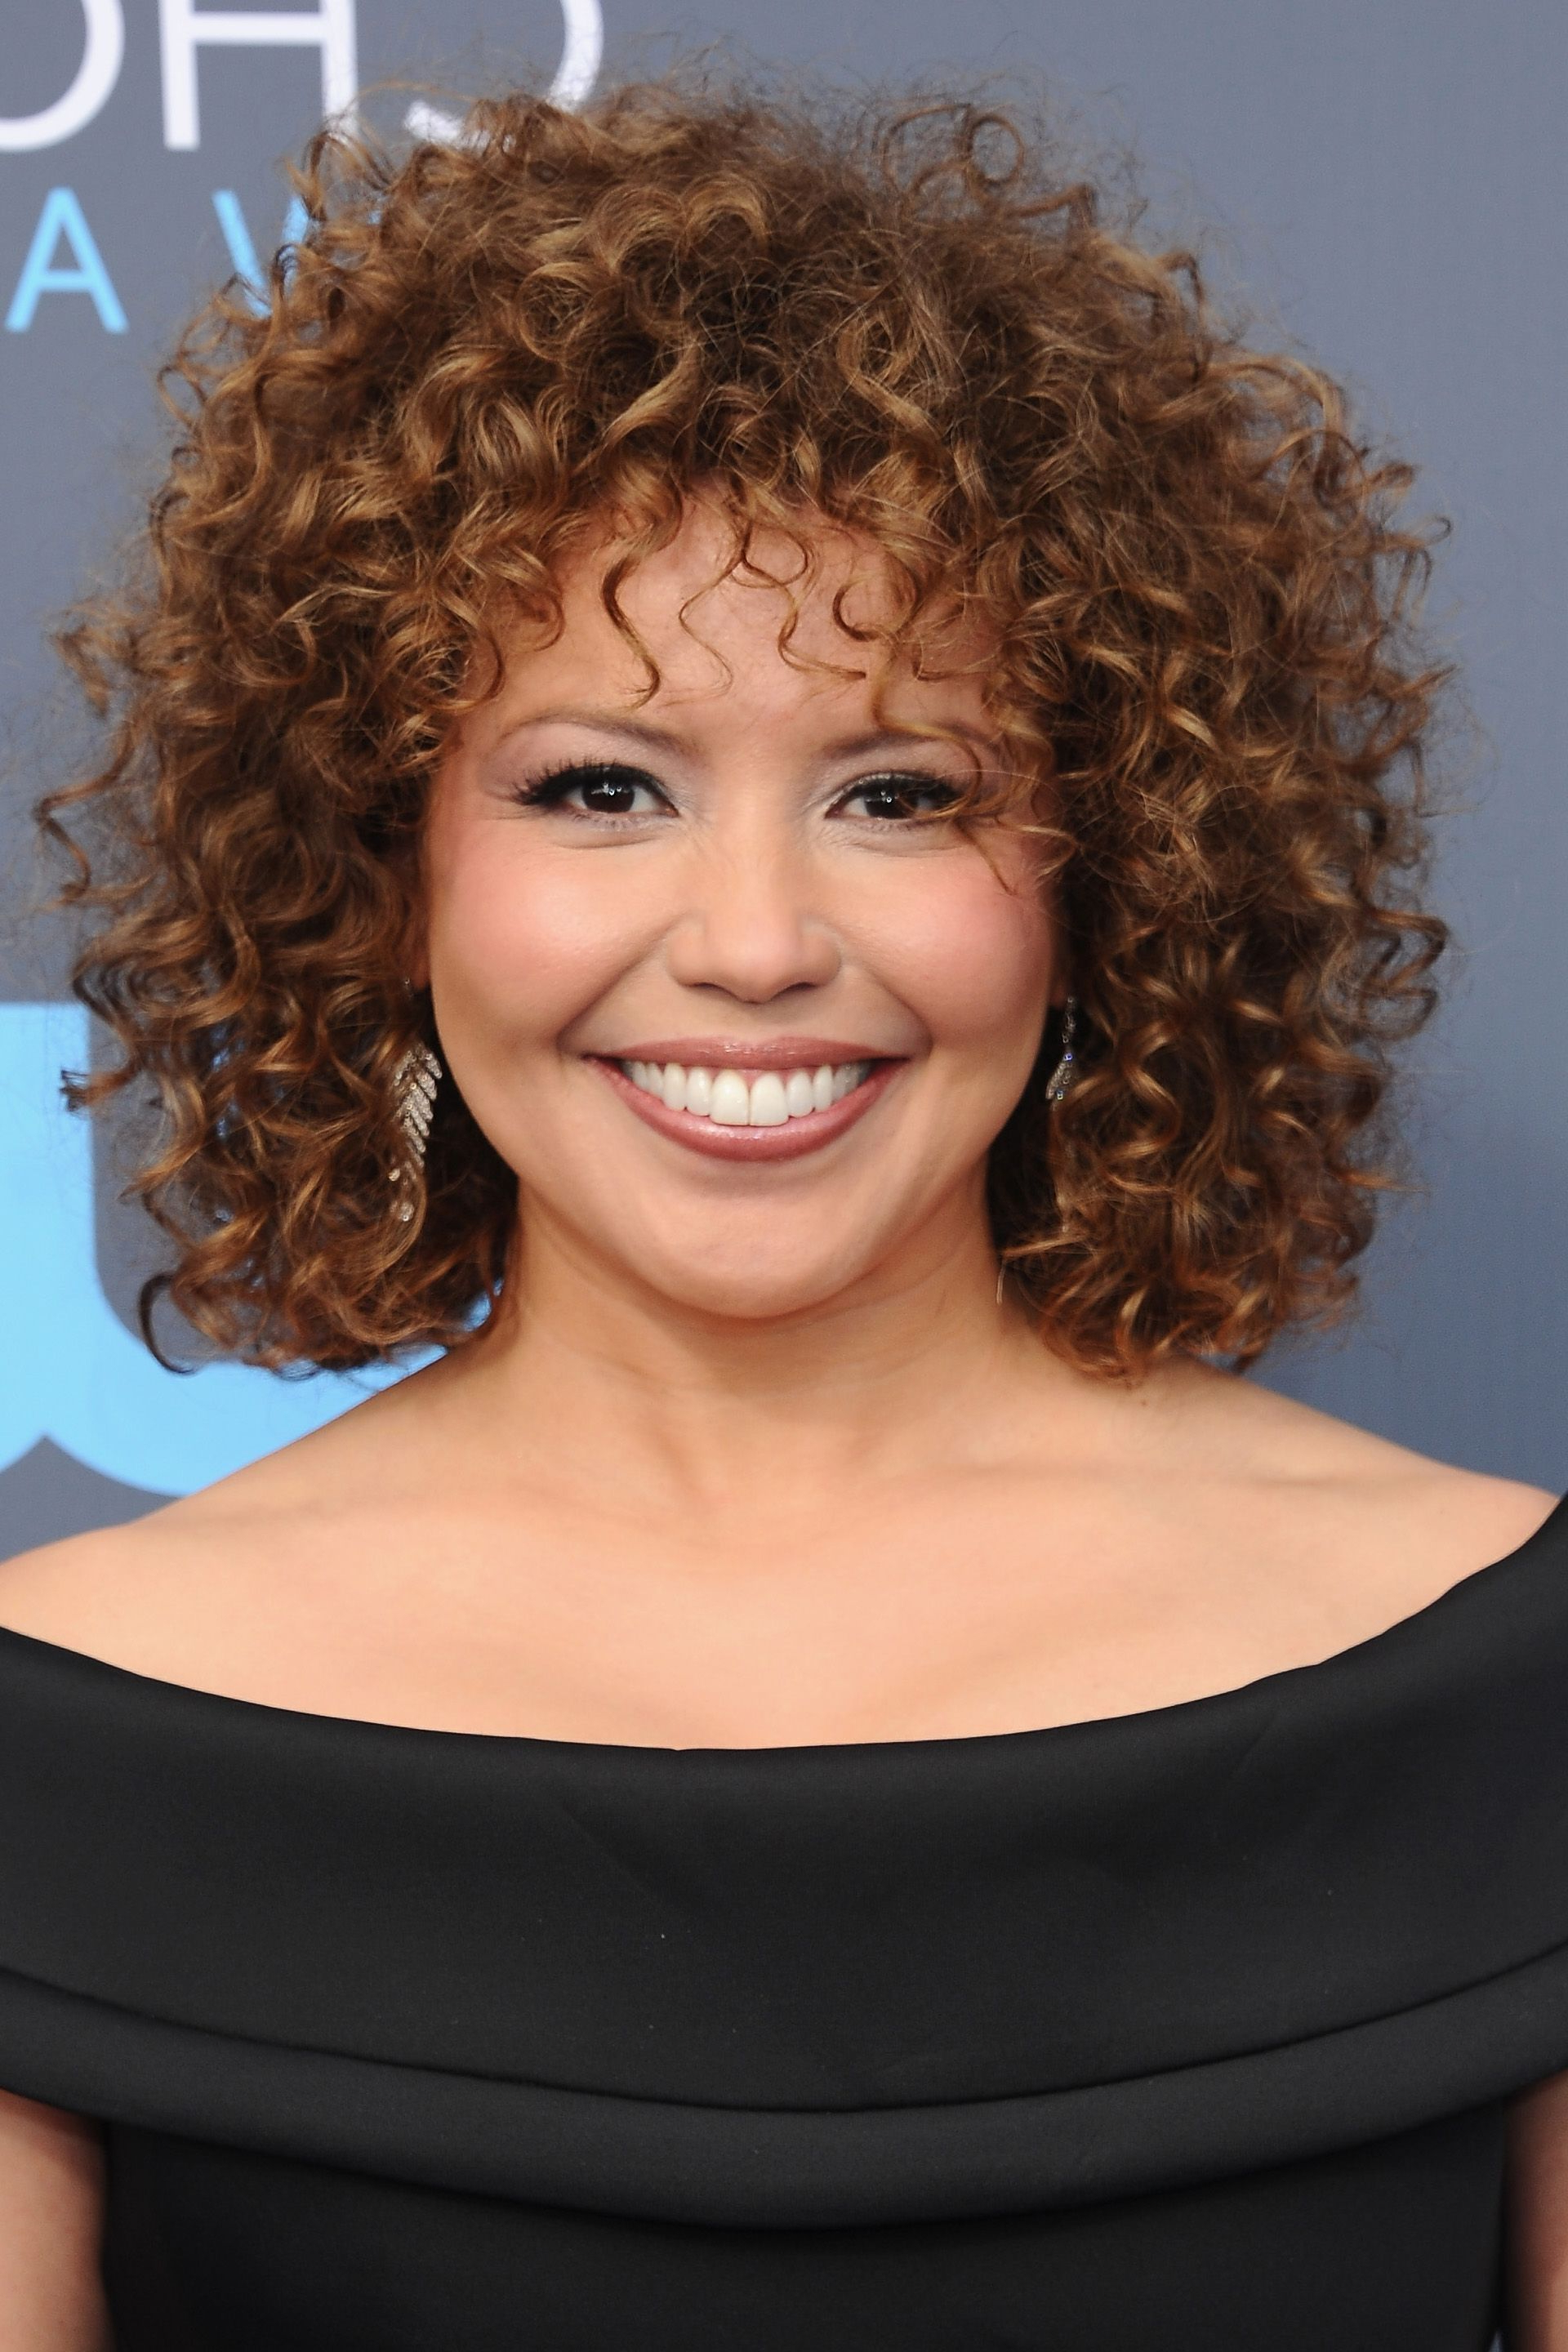 20 Celebrity Short Curly Hair Ideas – Short Haircuts And Hairstyles For Short Bob For Curly Hairstyles (View 17 of 20)